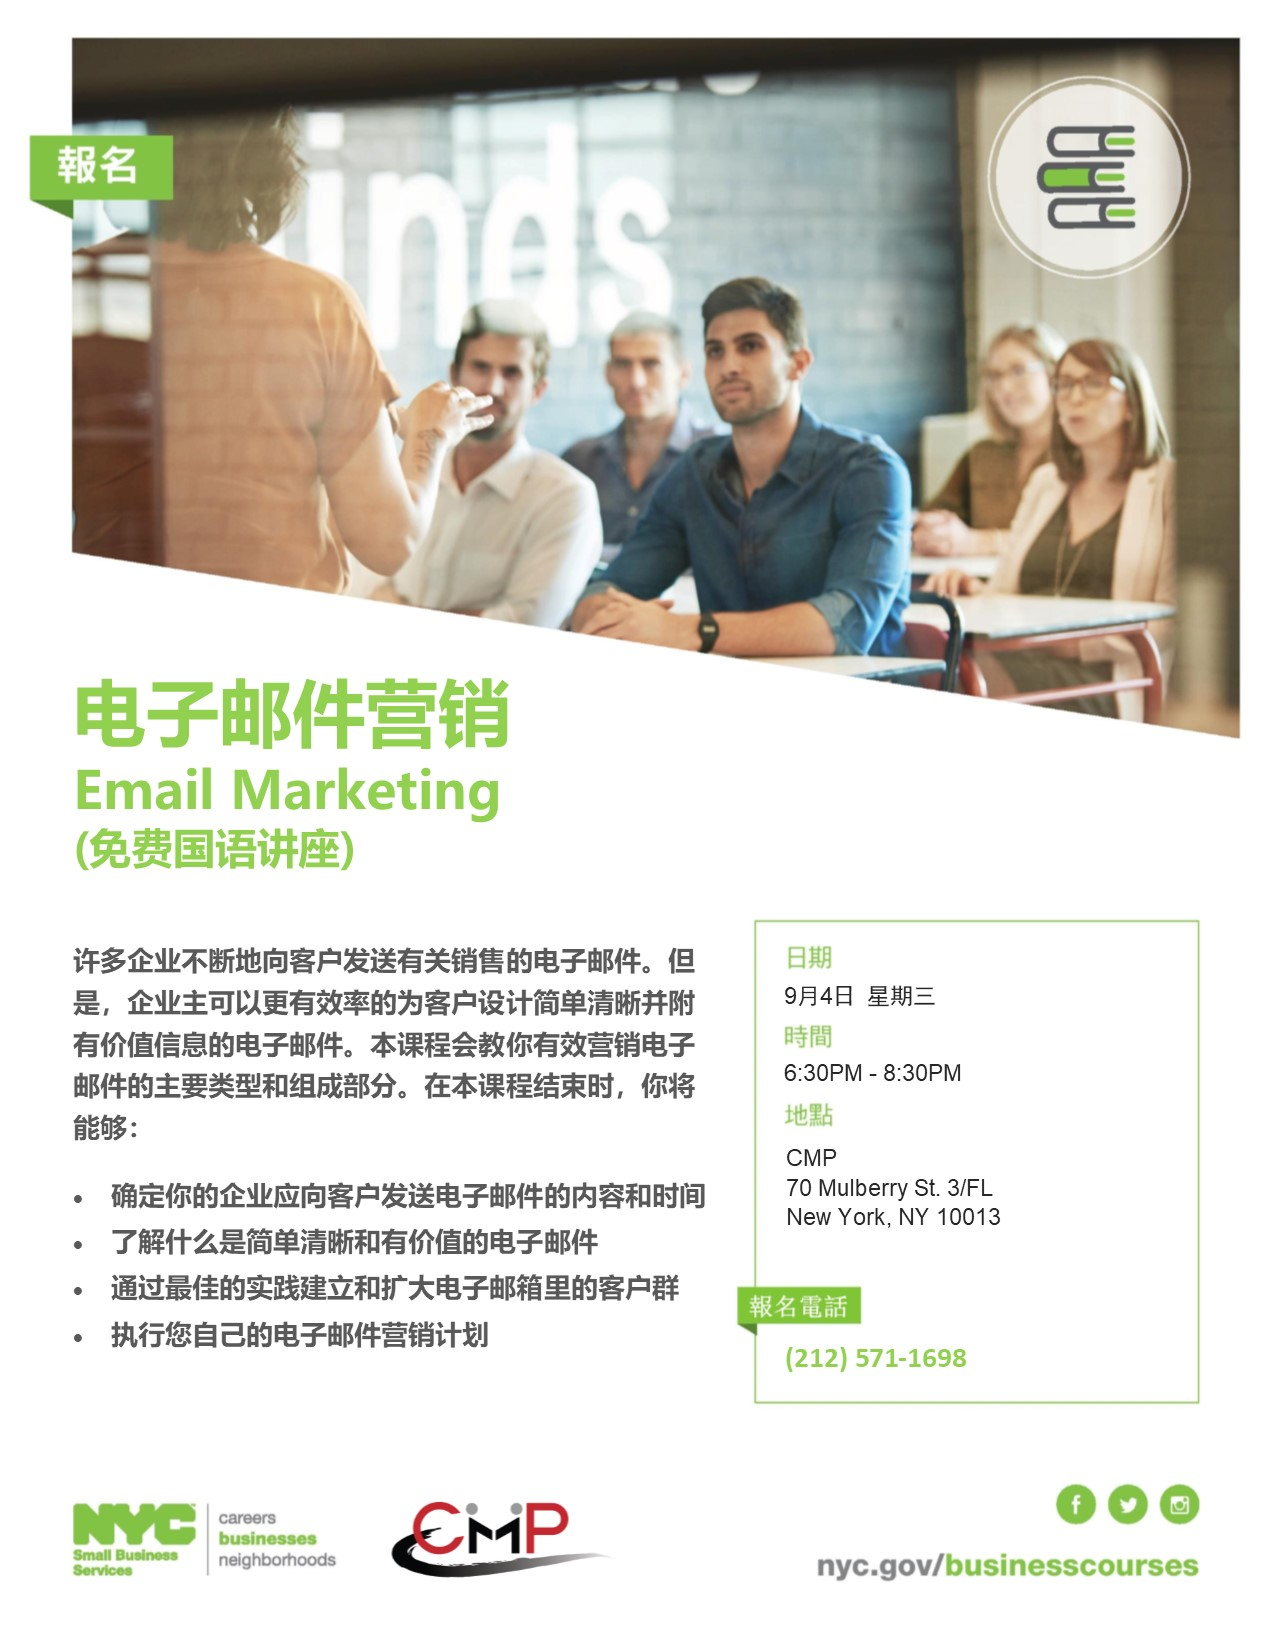 SBS Email Marketing 9-4-2019 -Chinese.jpg